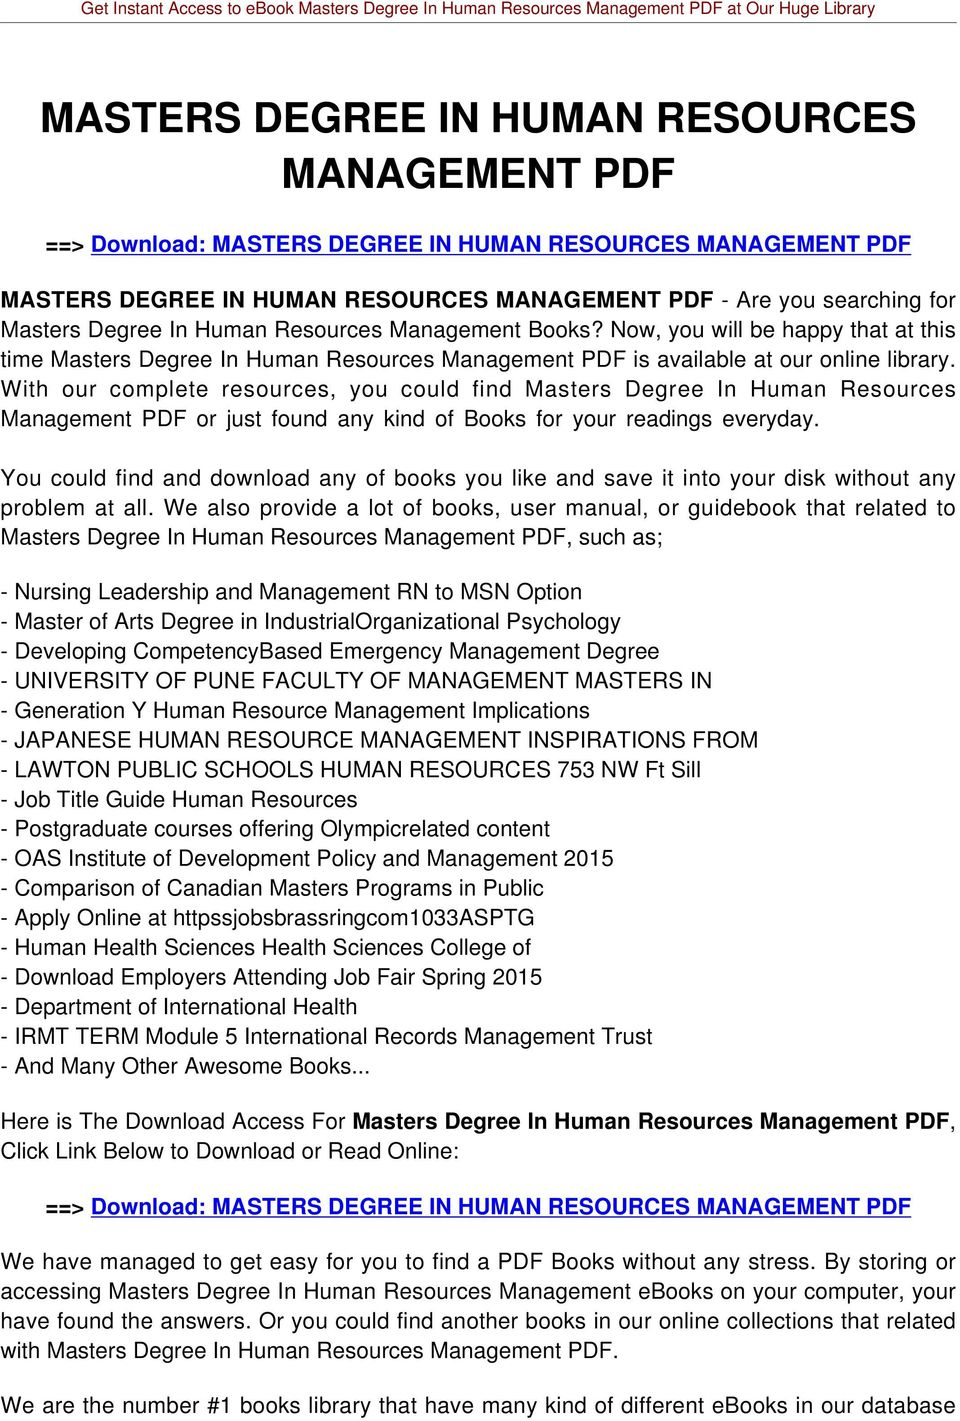 MASTERS DEGREE IN HUMAN RESOURCES MANAGEMENT PDF PDF